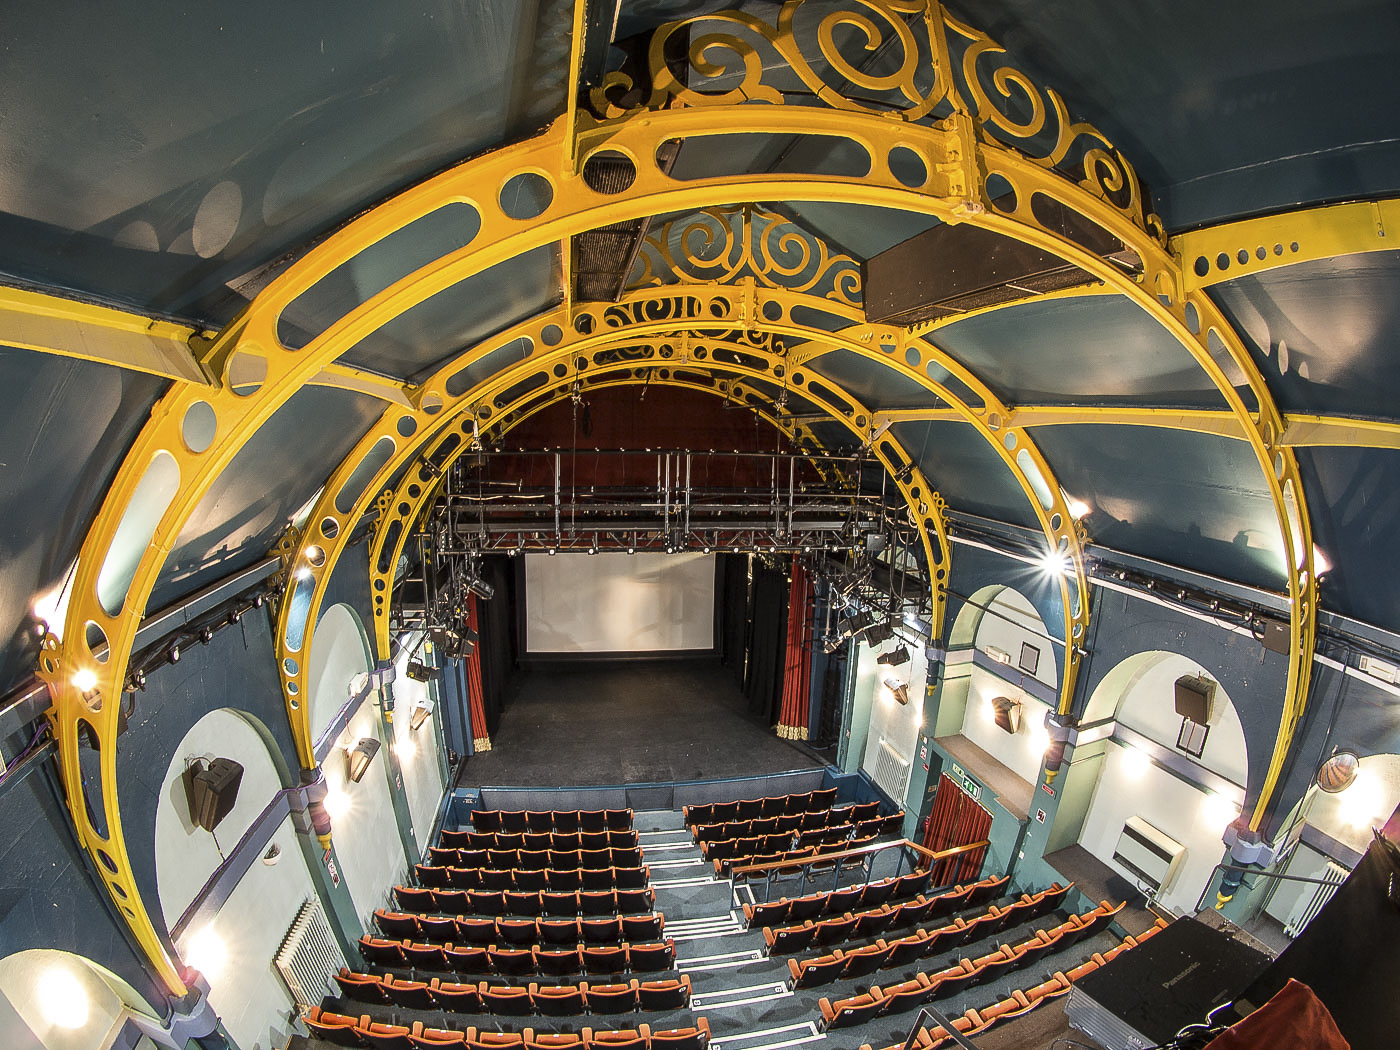 Fish-eye view of the Auditorium